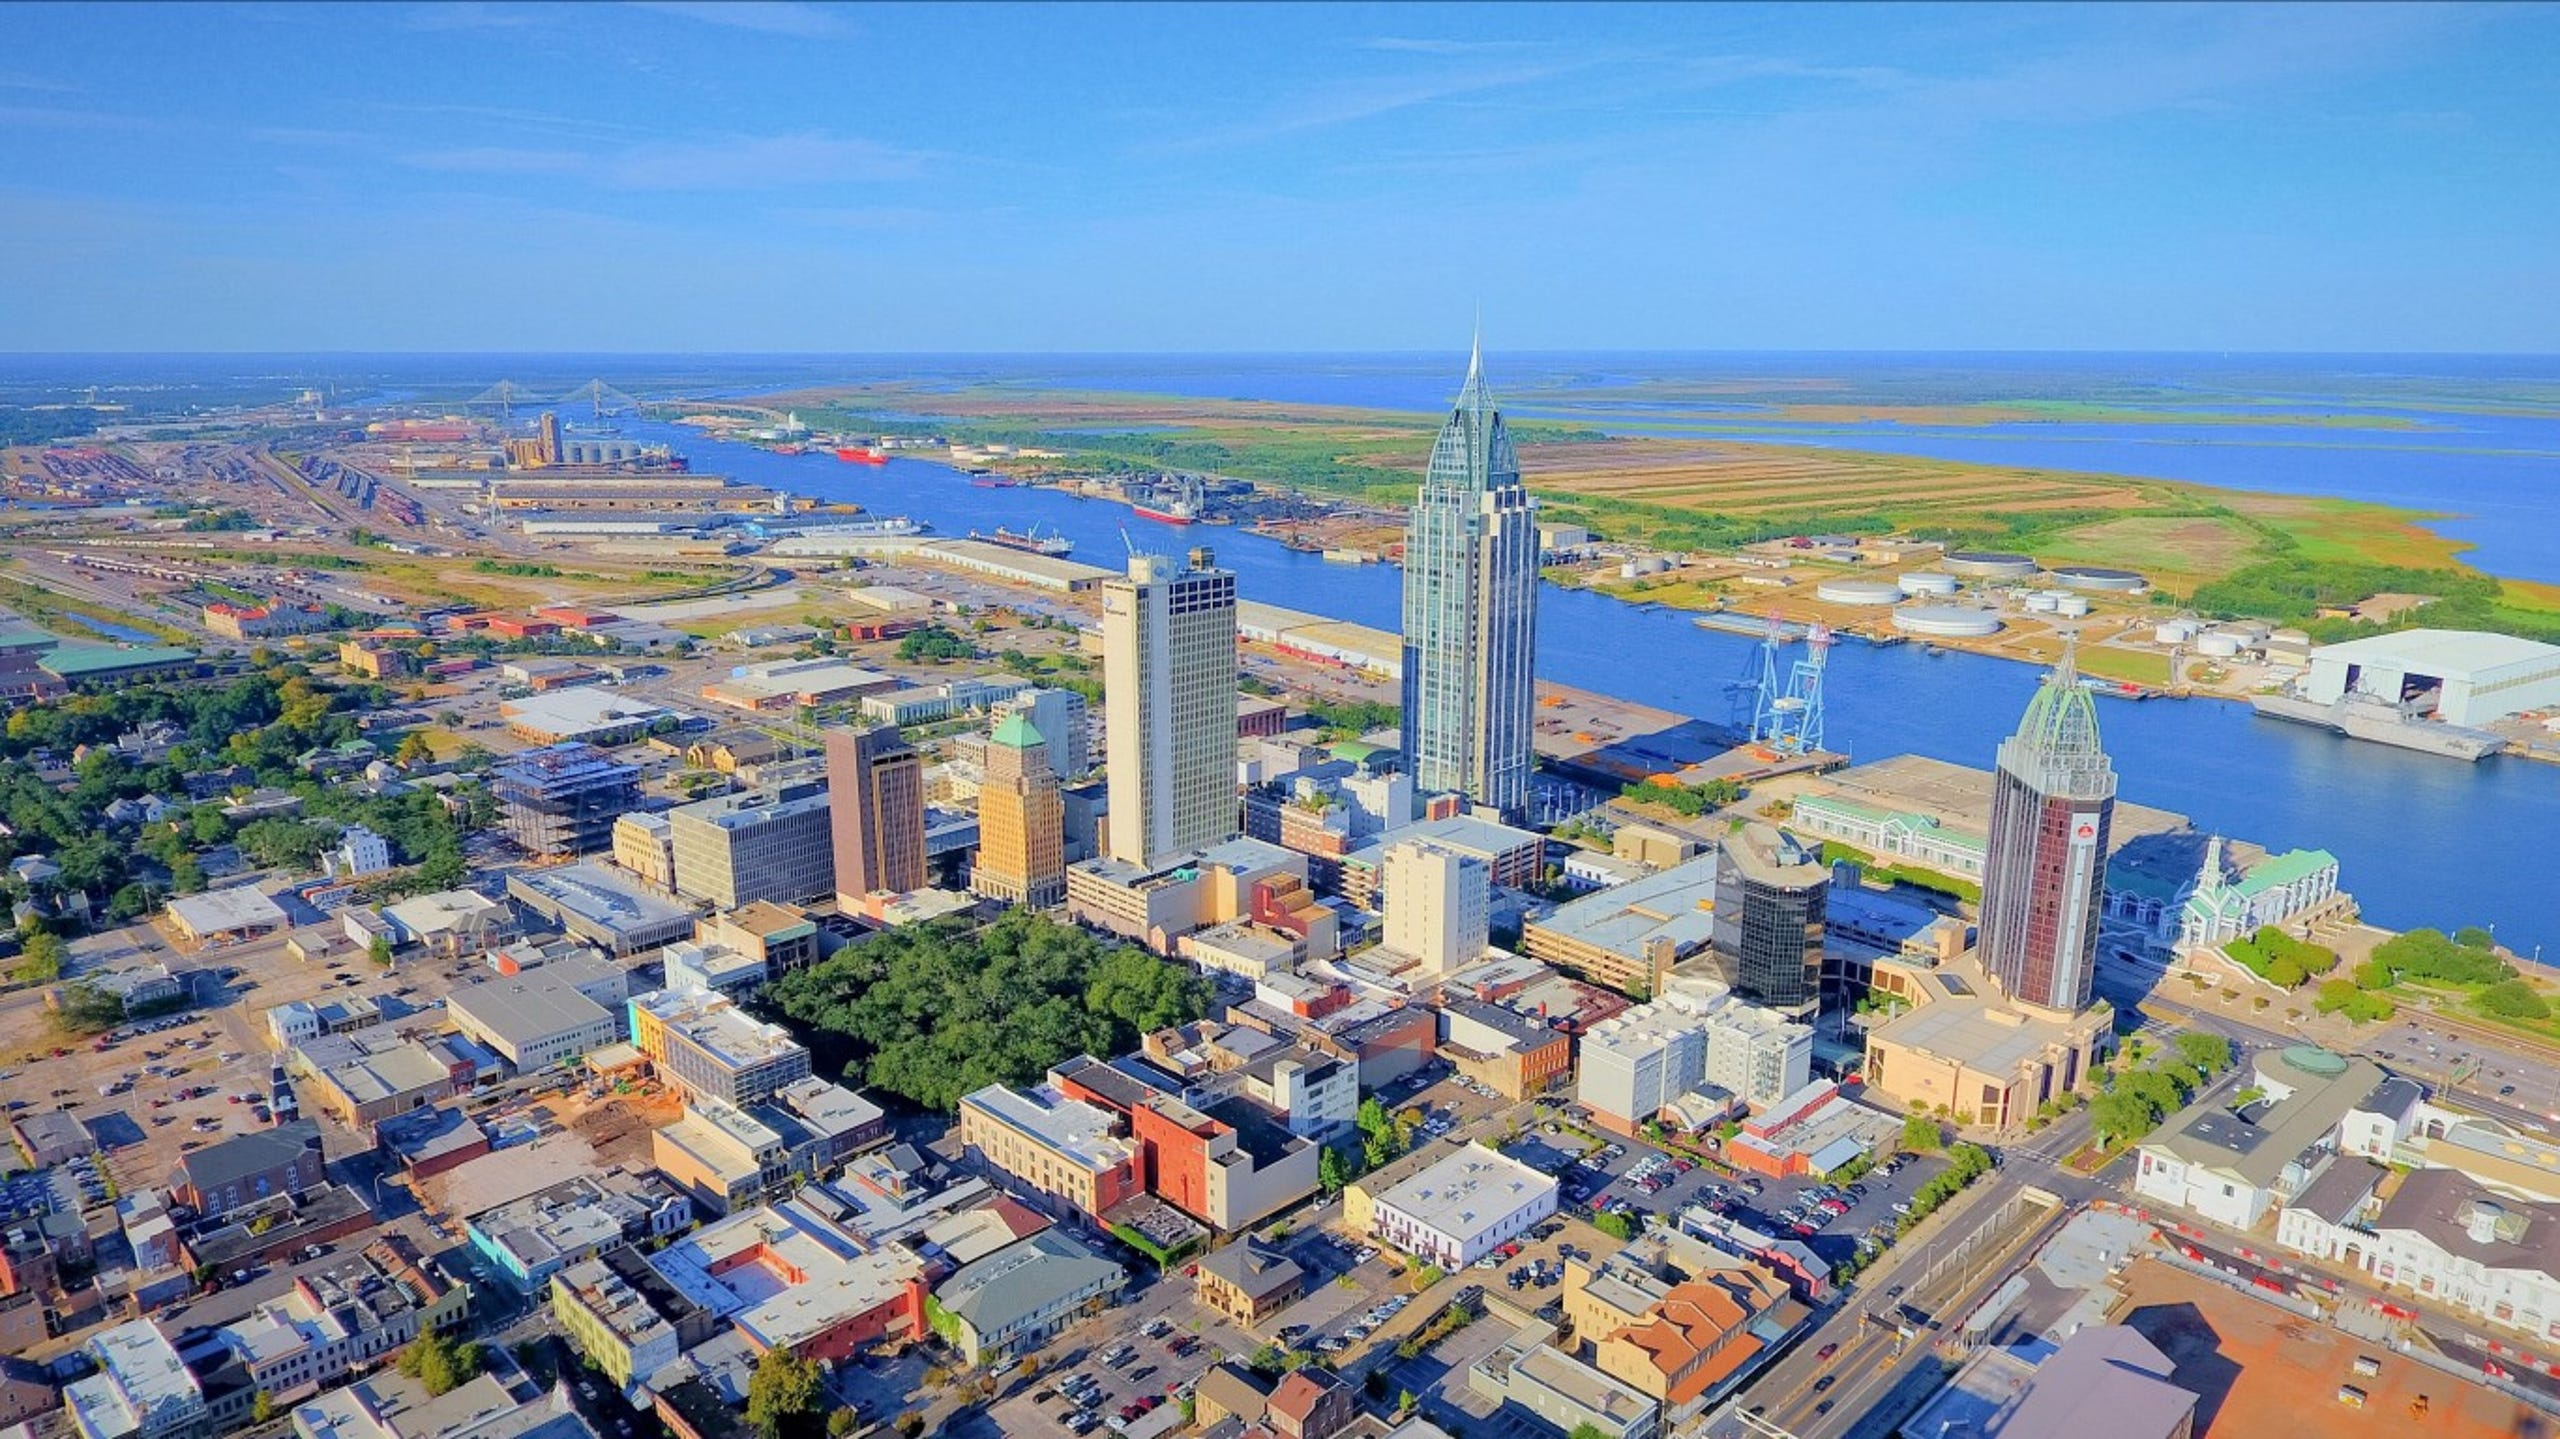 <strong>24. Mobile, Alabama</strong><br /> <strong>&bull; Preschool enrollment:</strong> 45.4%<br /> <strong>&bull; High school graduation rate:</strong> 83.7%<br /> <strong>&bull; Pop. with access to areas for exercise:</strong> 72.0%<br /> <strong>&bull; Property crime rate:</strong> 4,555 crimes per 100,000 people (highest 10%)